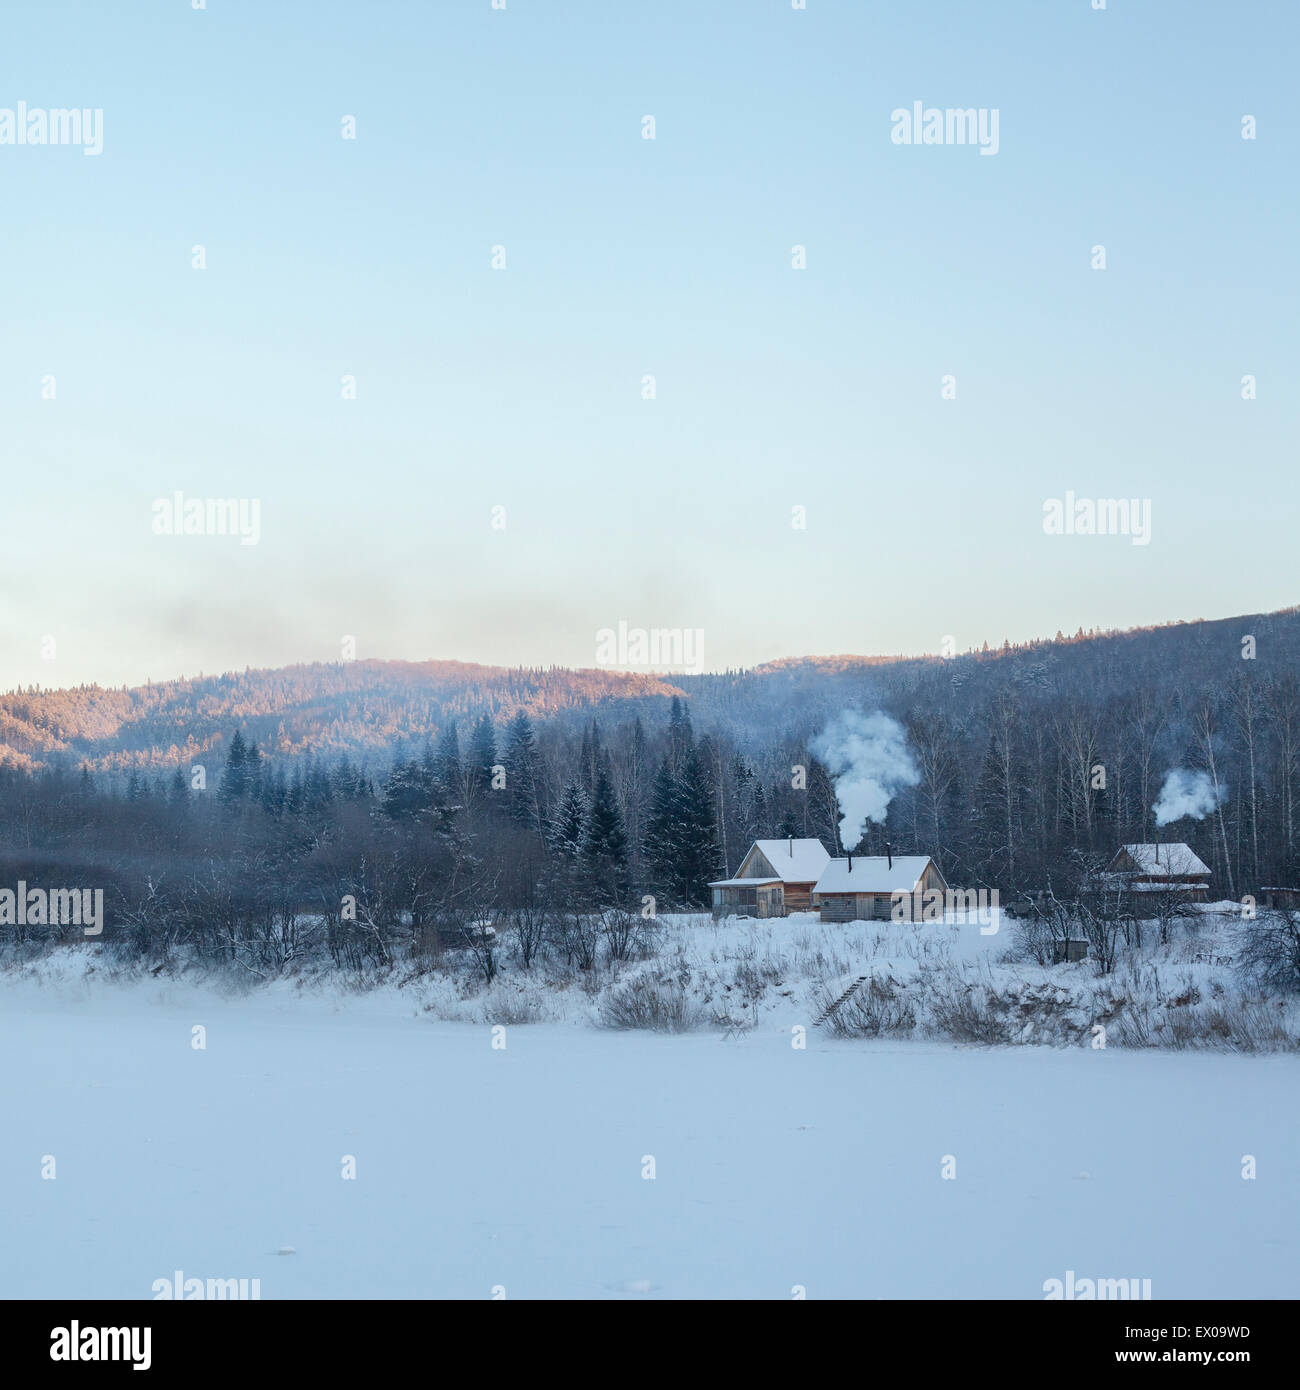 View of distant houses and forest in snow covered landscape, Sarsy village, Sverdlovsk Oblast, Russia - Stock Image